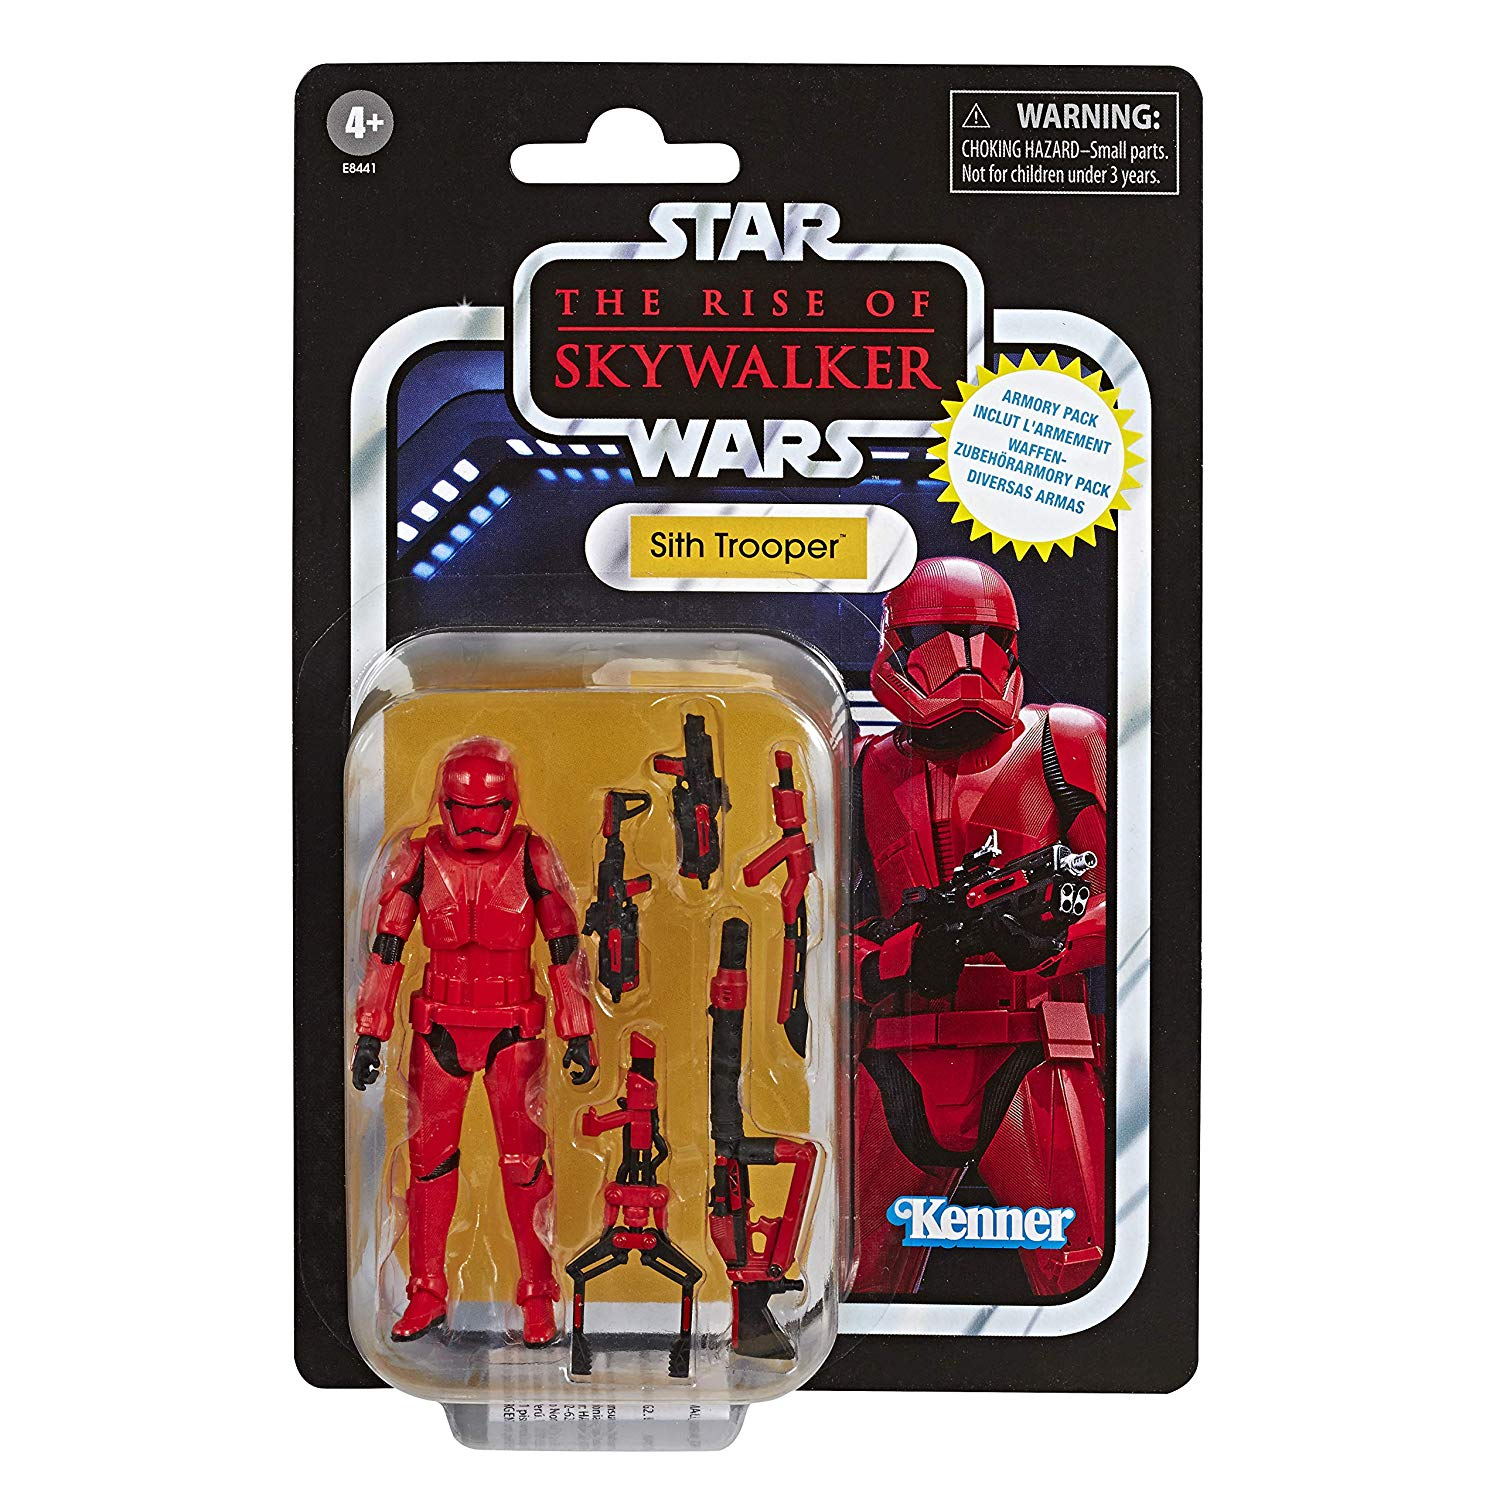 91uIGAUi2gL. SL1500 - Rise of Skywalker Gift ideas for Star Wars Lovers [User Rated]